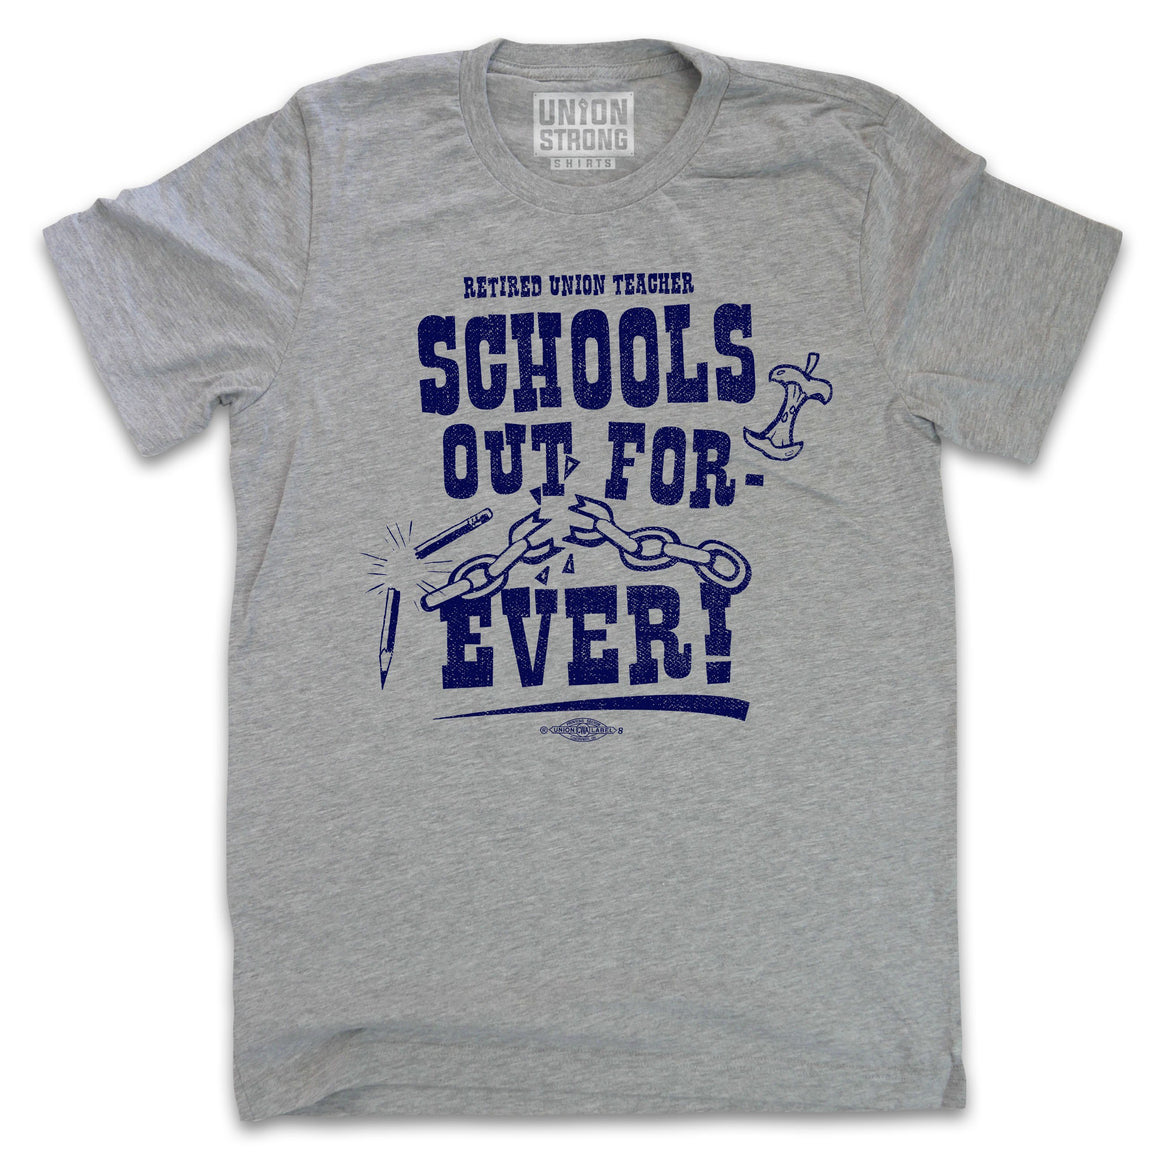 School's Out Forever - Retired Union Teacher Shirts unionstrongshirts